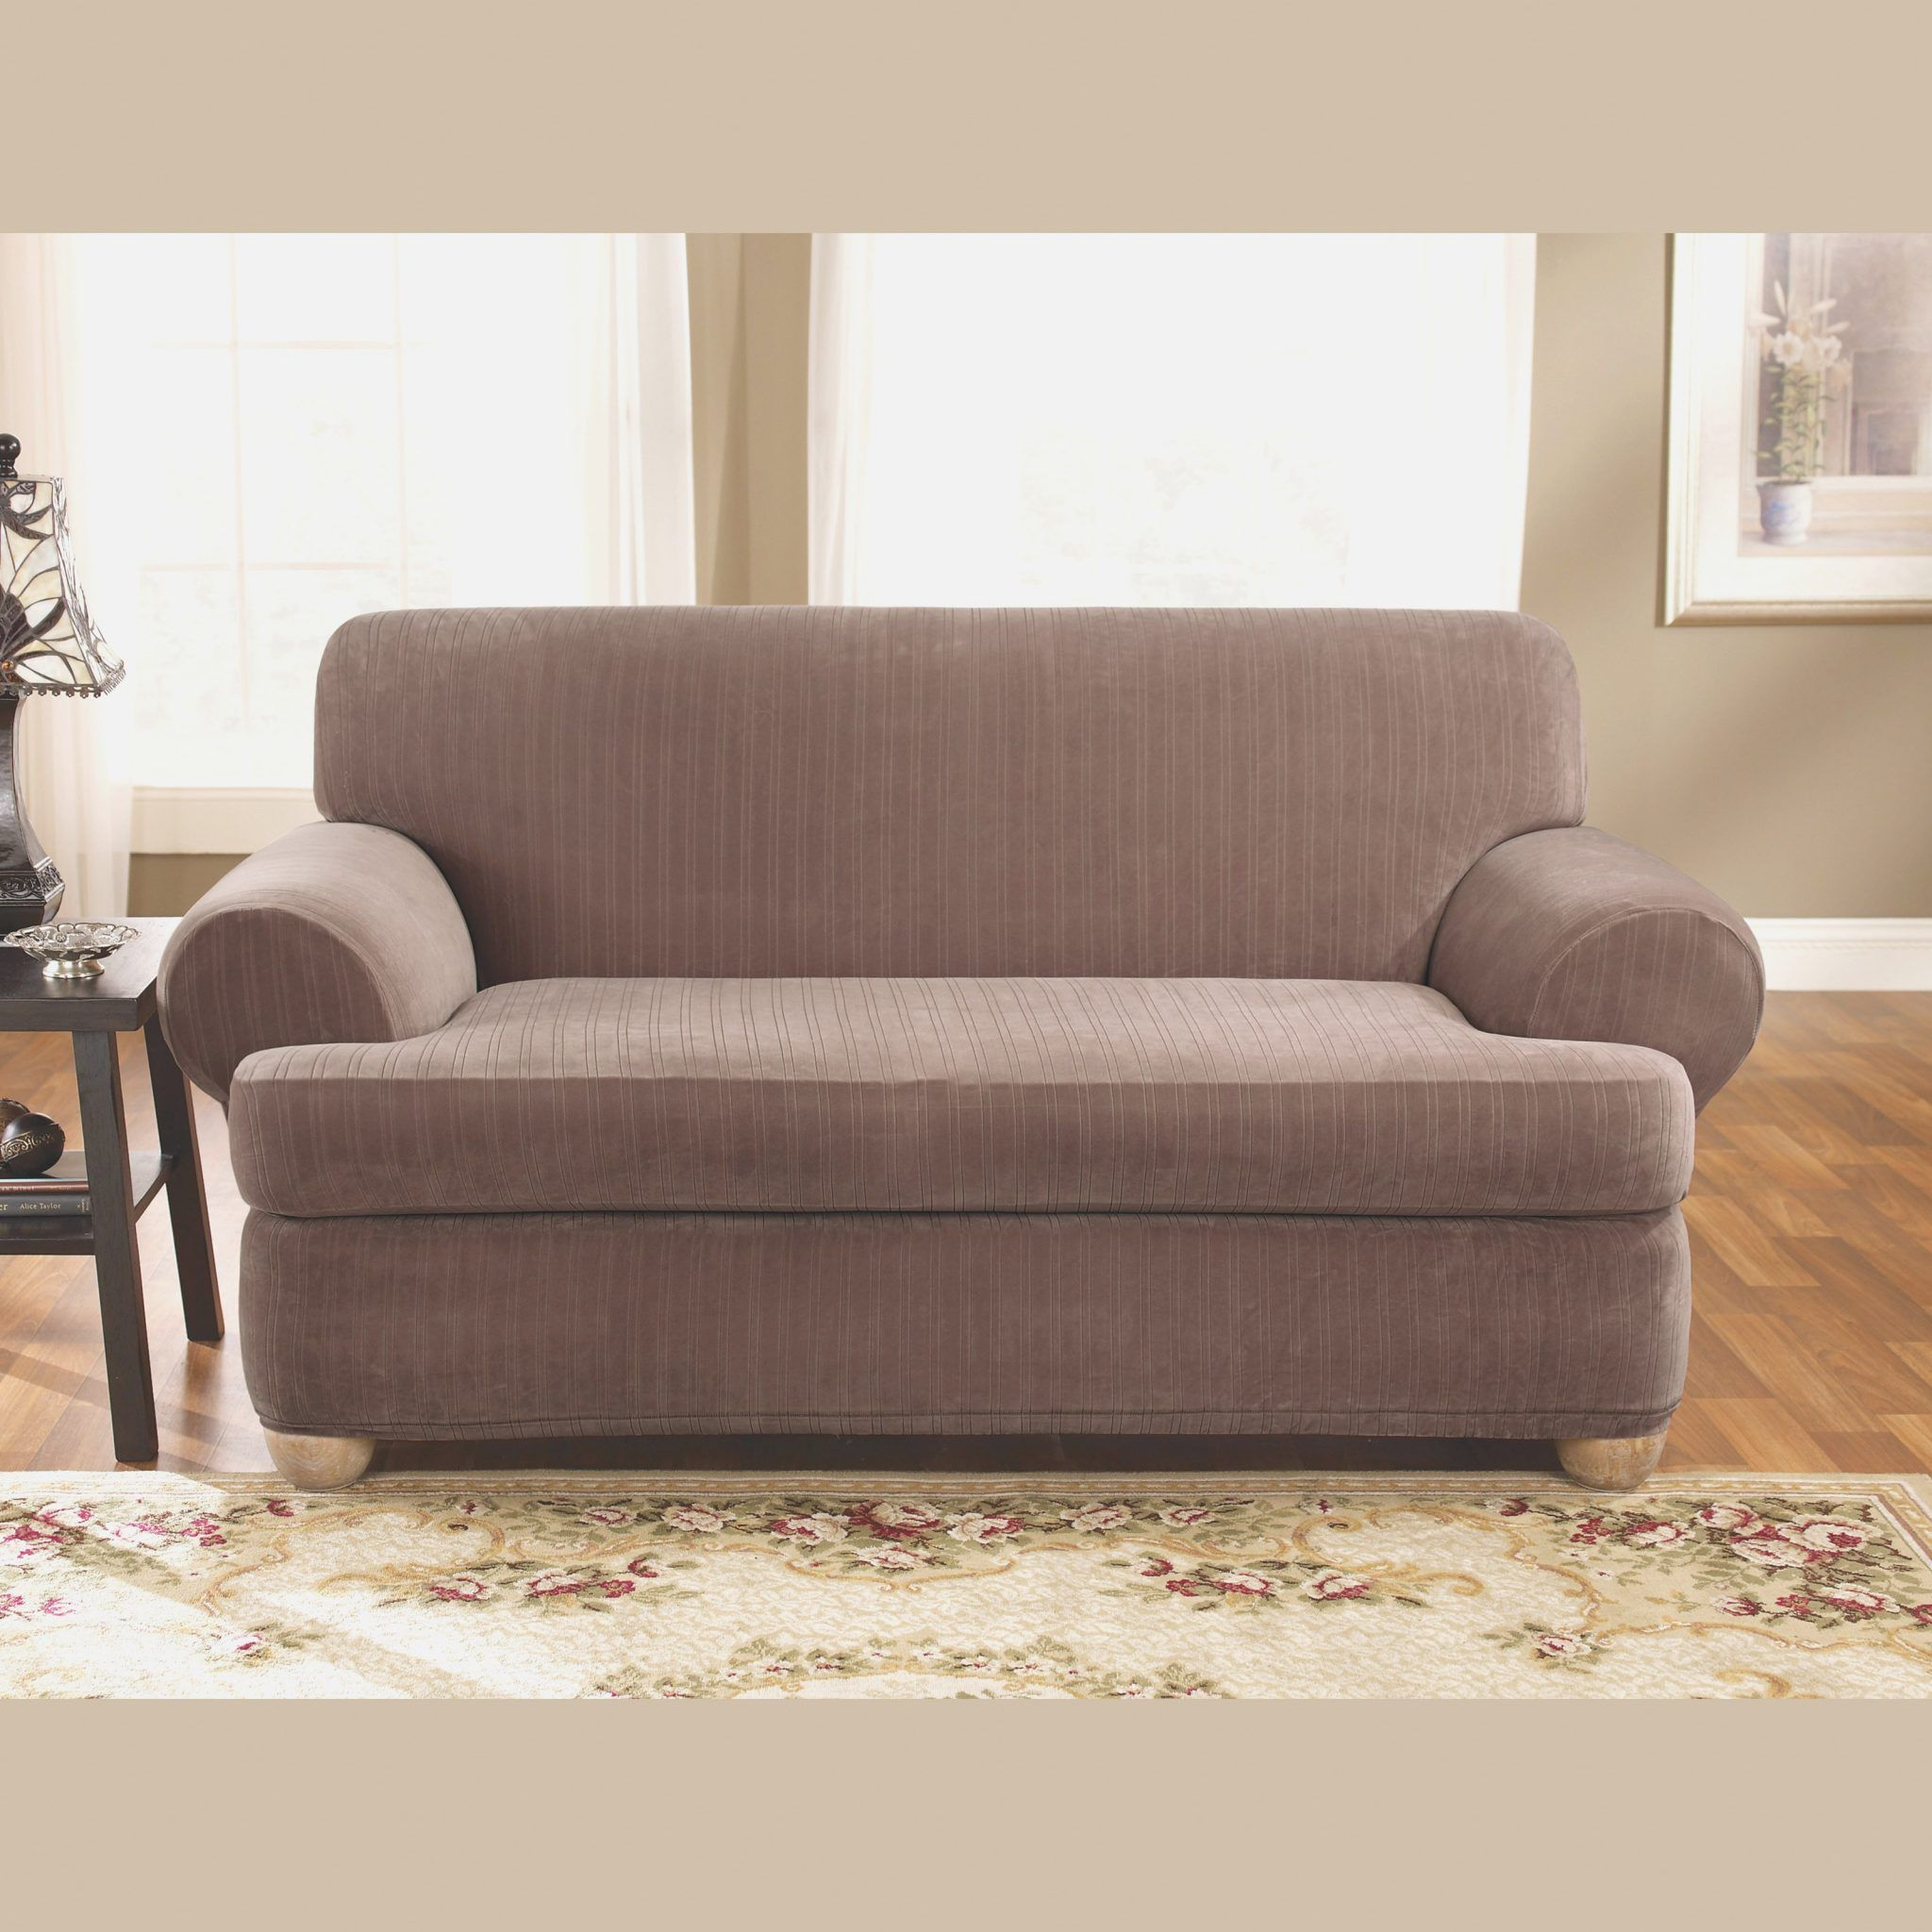 Sofa Slipcovers Pottery Barn   Pottery Barn Sofa Bed Slipcovers, Pottery  Barn Sofa Slipcovers Ebay